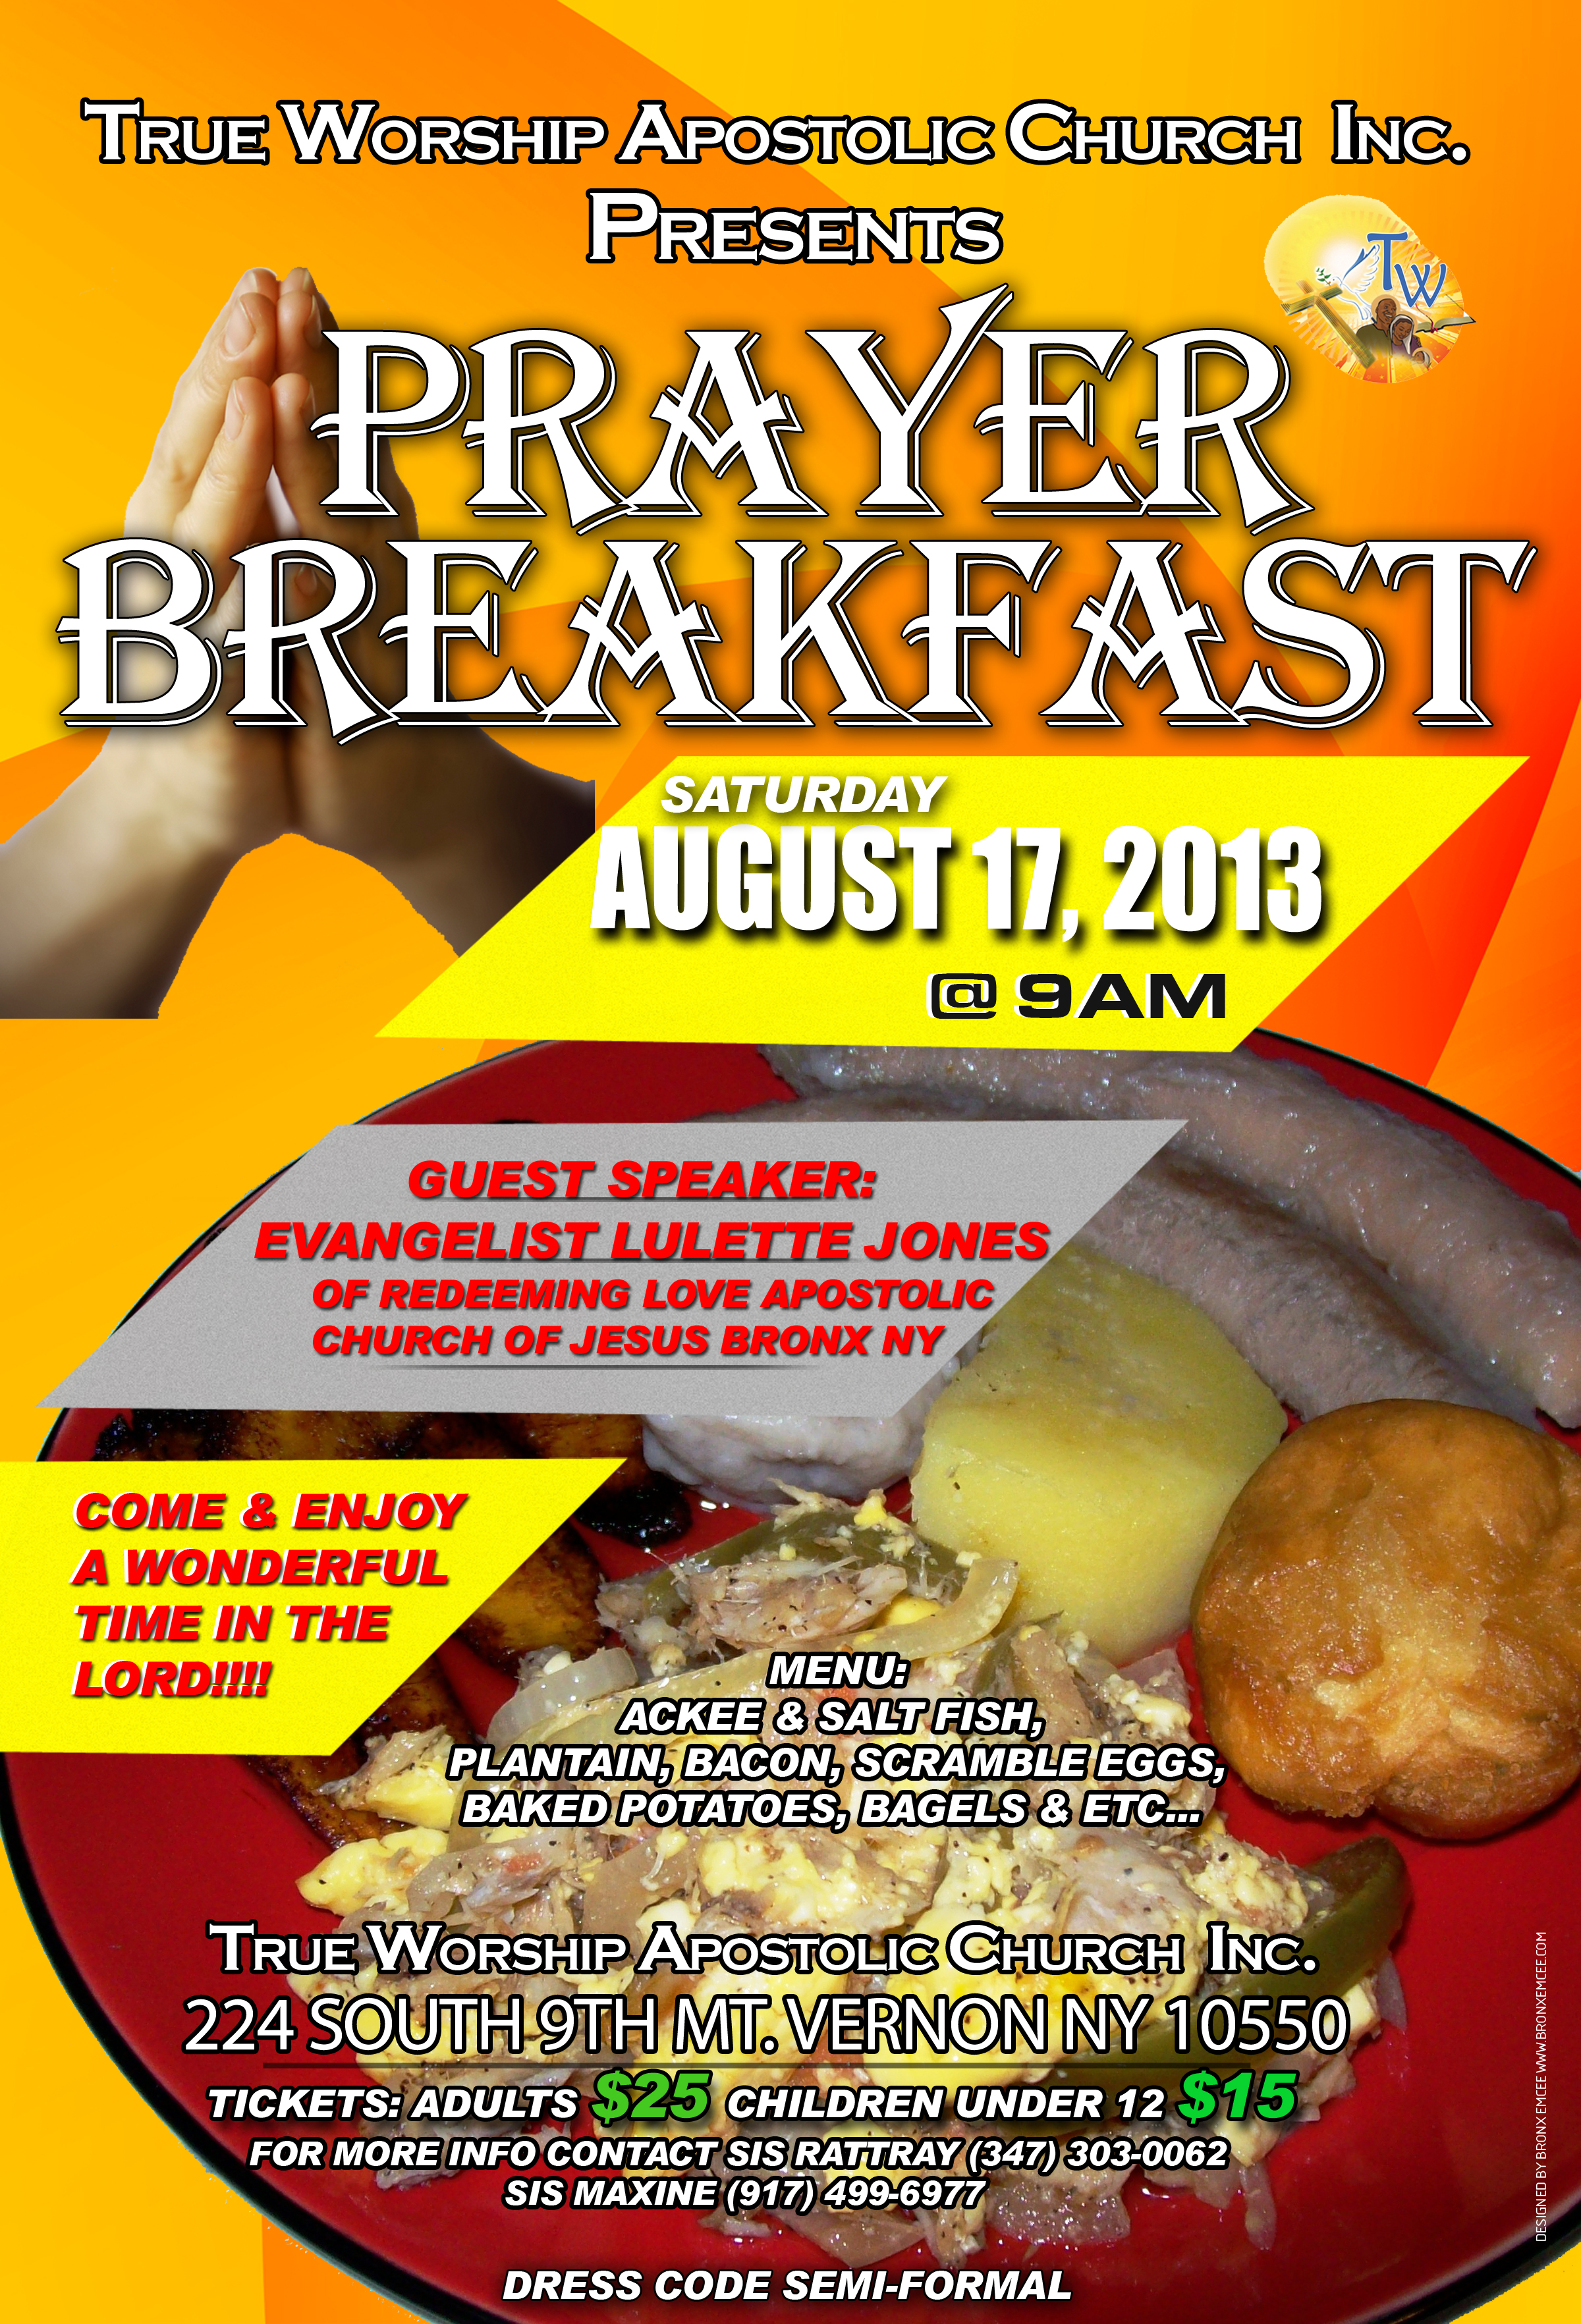 Prayer Breakfest Flyer.jpg